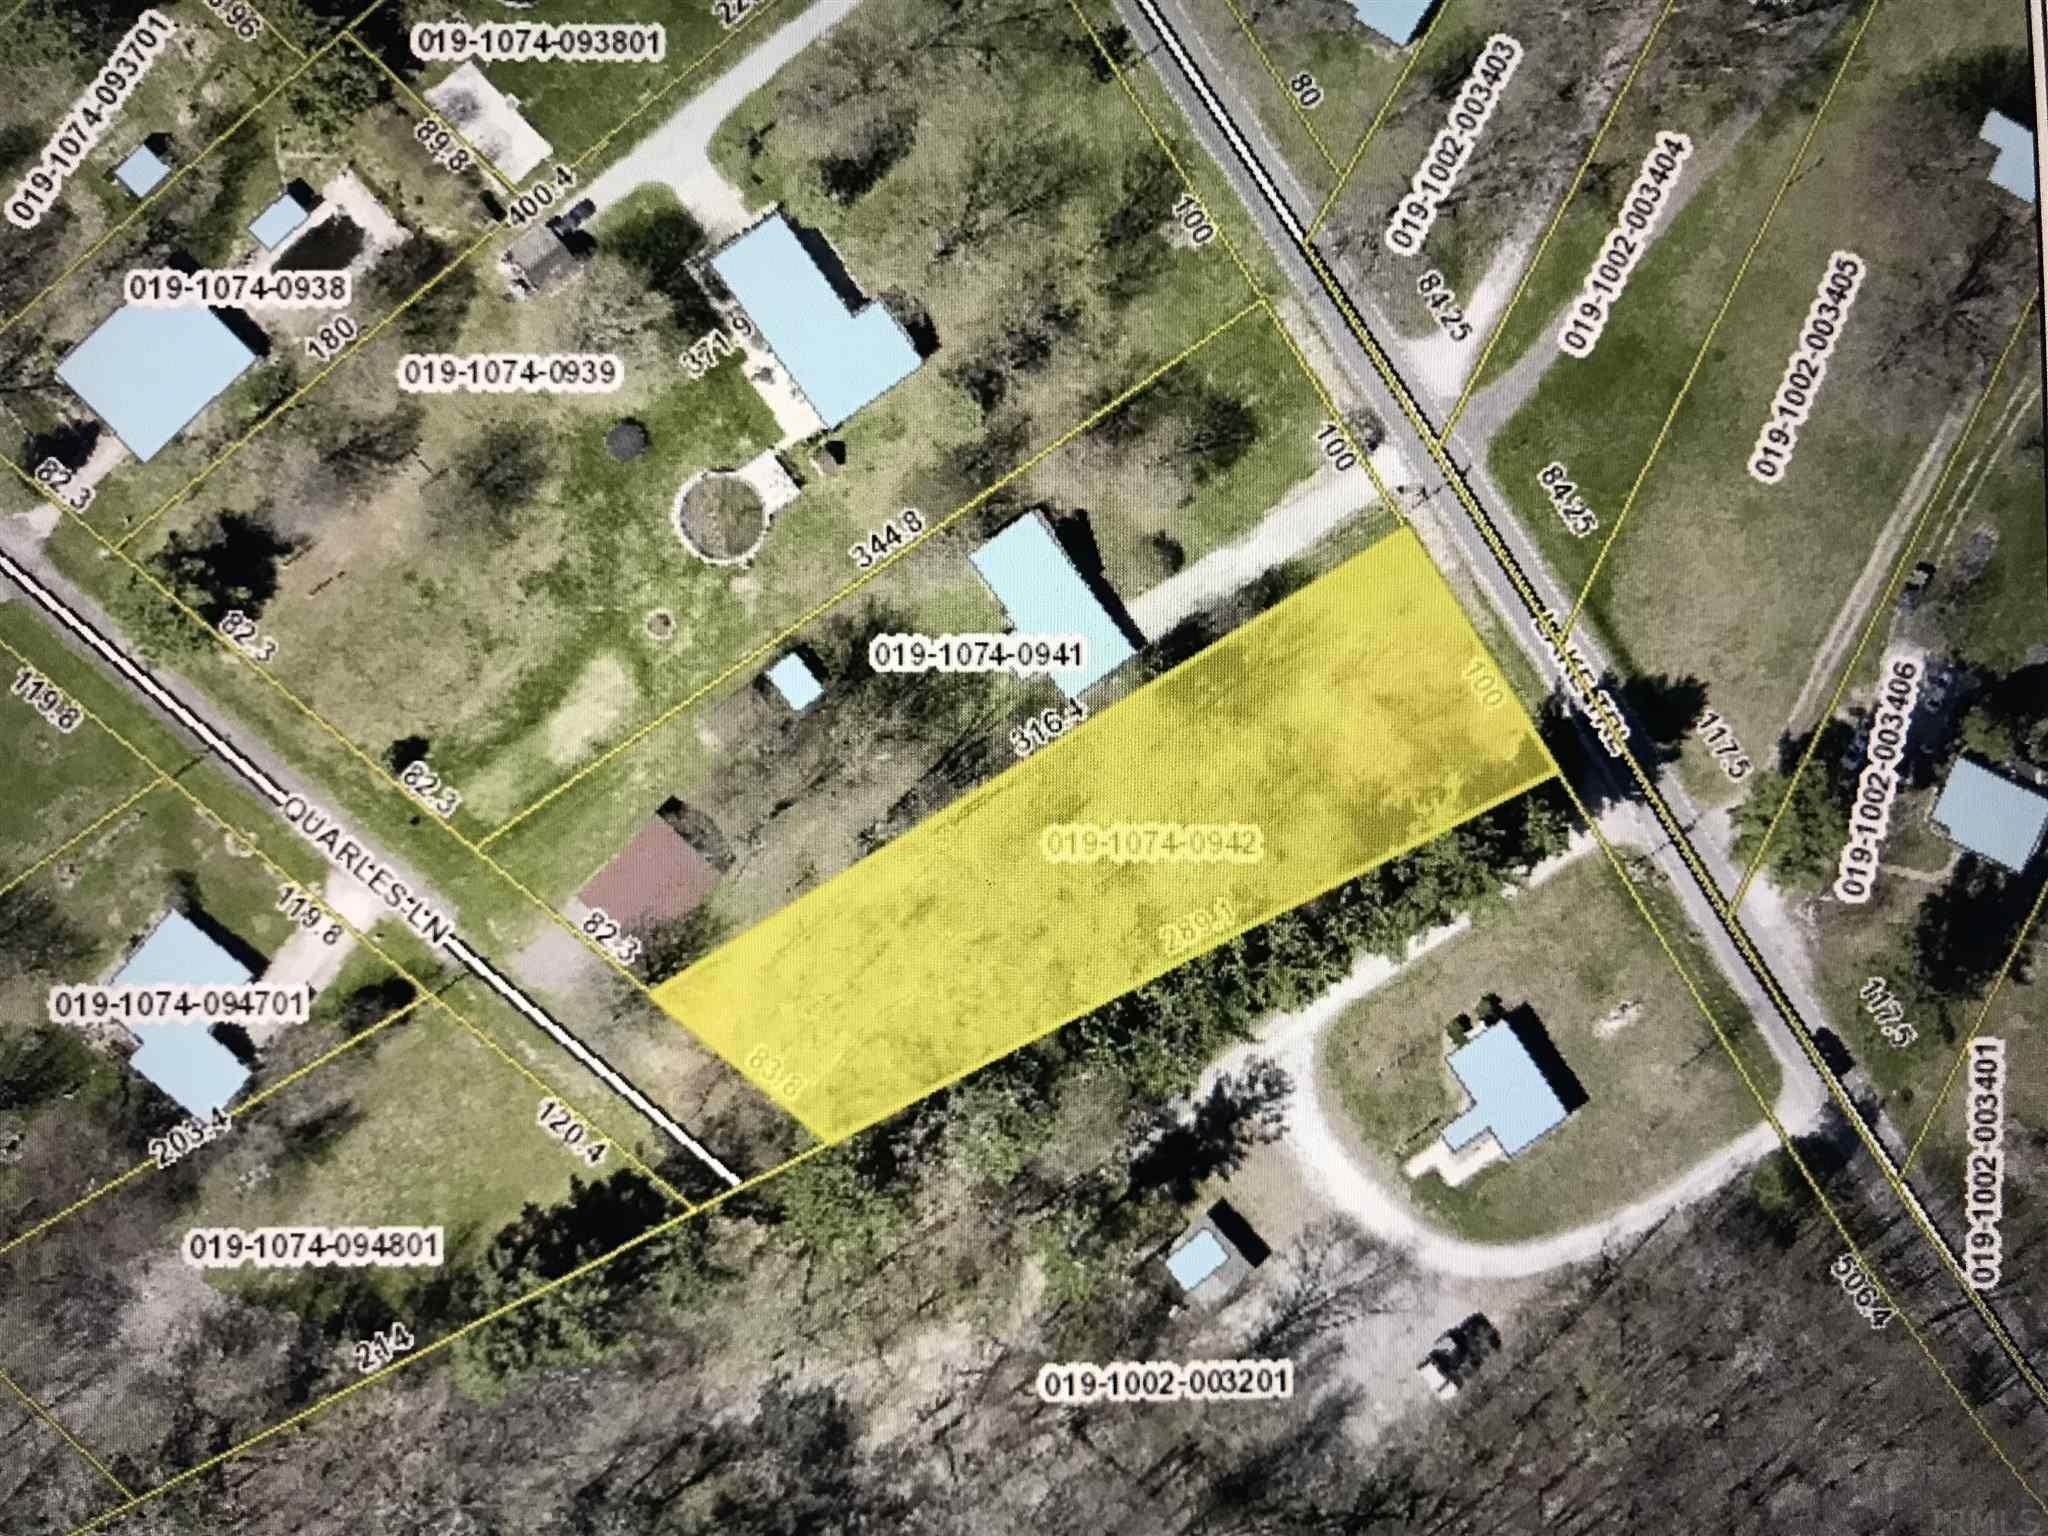 Residential Lots & Land for Sale at 67756 Patnaude Trail Lakeville, Indiana 46536 United States